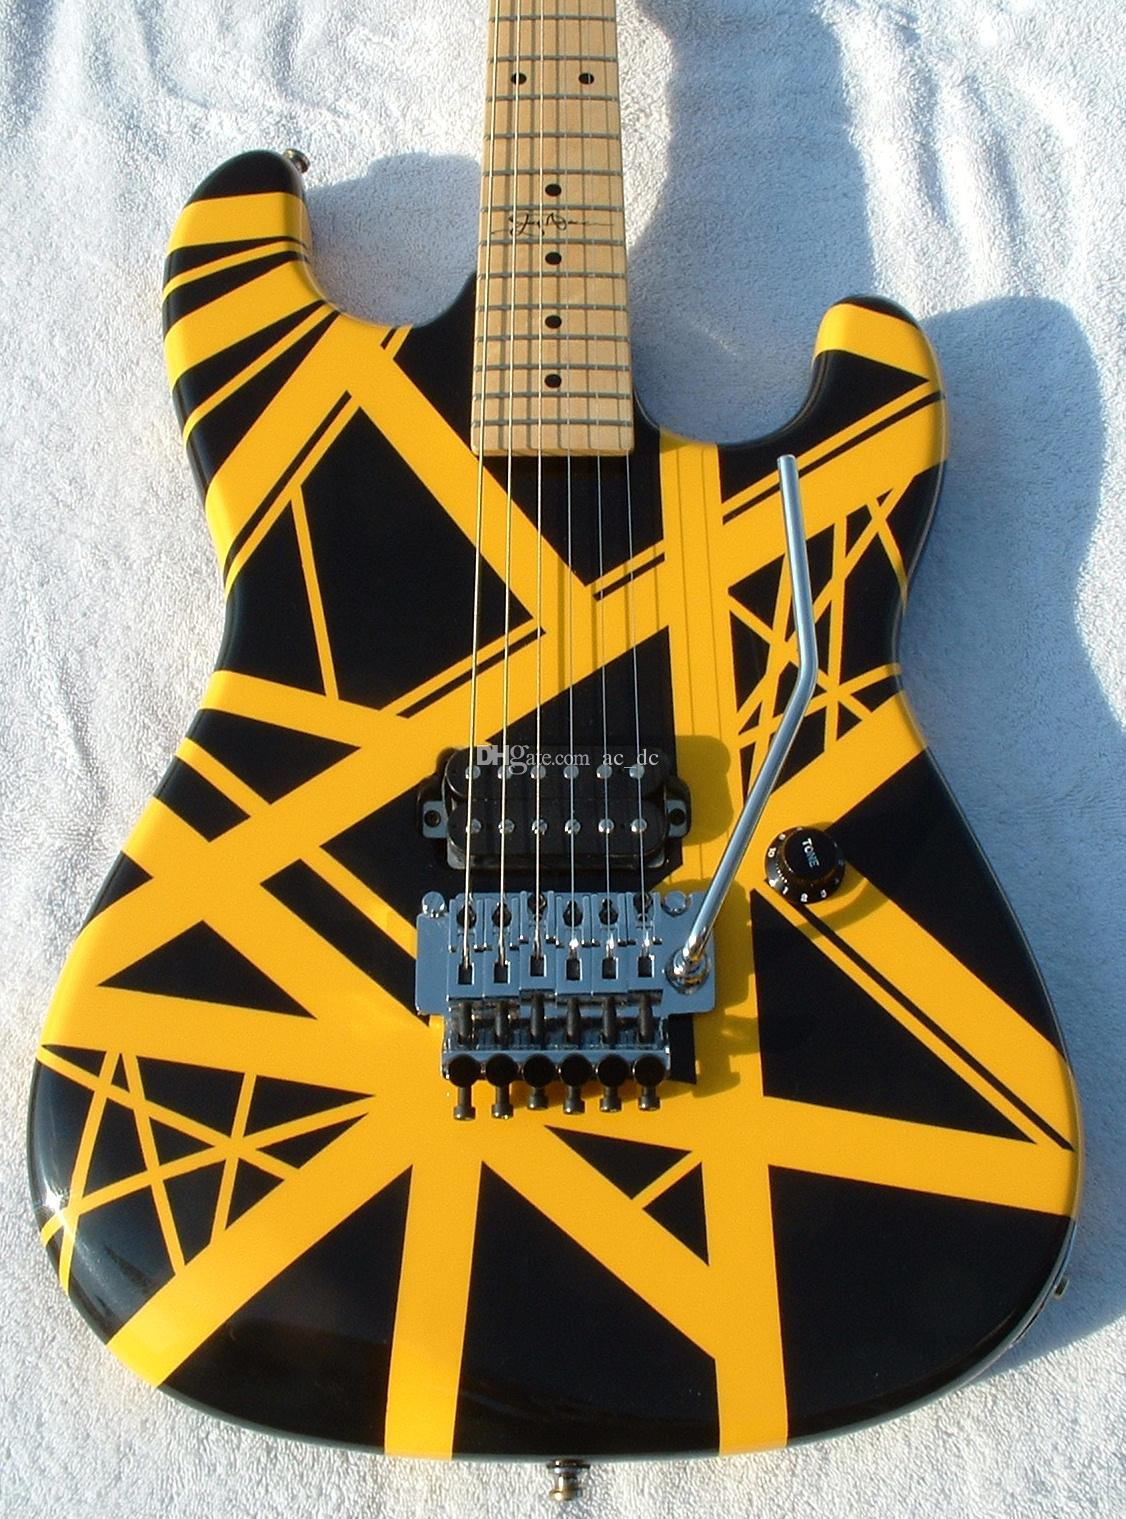 Custom Kra Wolf Edward Van Halen 5150 Yellow Stripe Black Electric Guitar Floyd Rose Tremolo Bridge, Maple Neck & Fingerboard